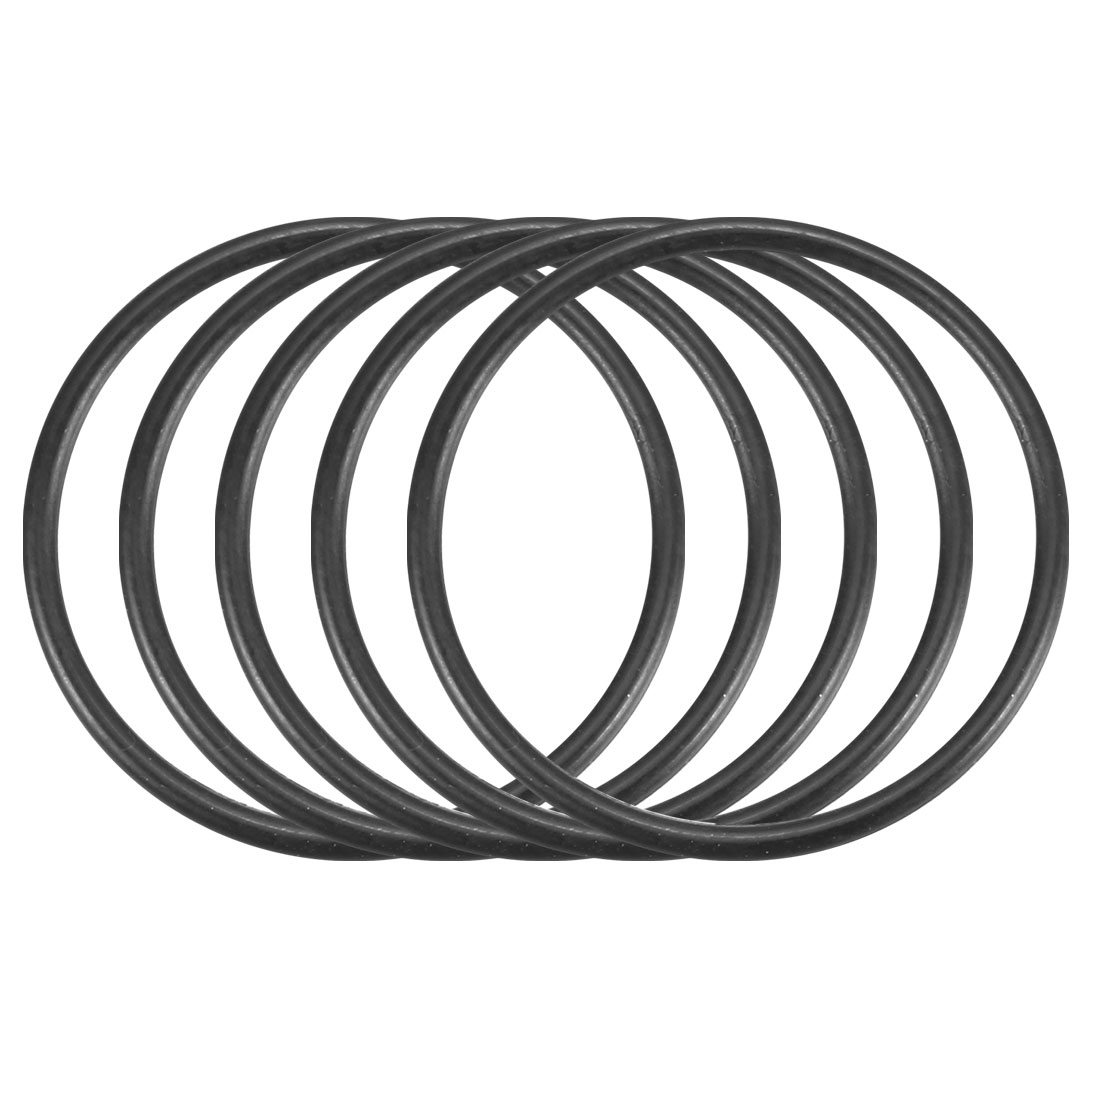 100Pcs Black Universal O-Ring 20mm x 1.2mm BUNA-N Material Oil Seal Washers Grommets